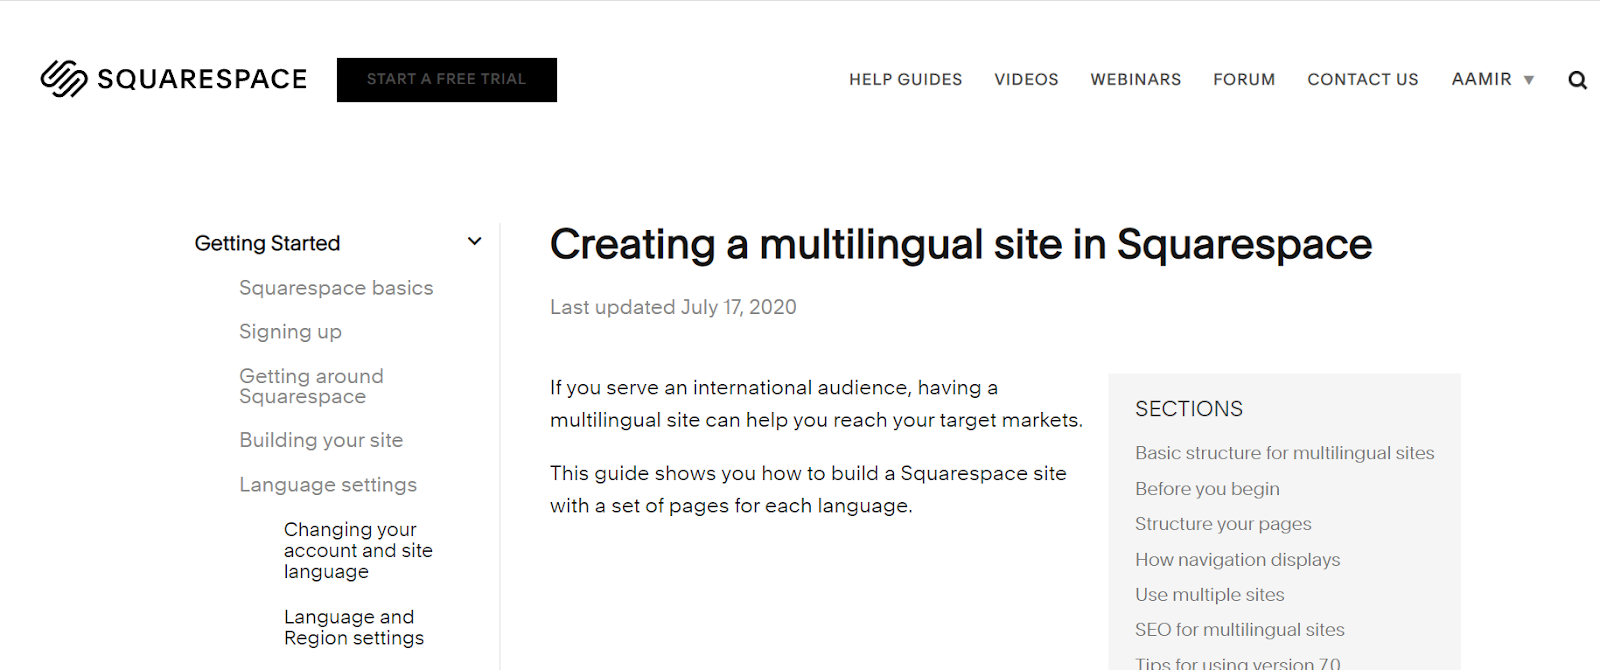 Creating a multilingual site in Squarespace